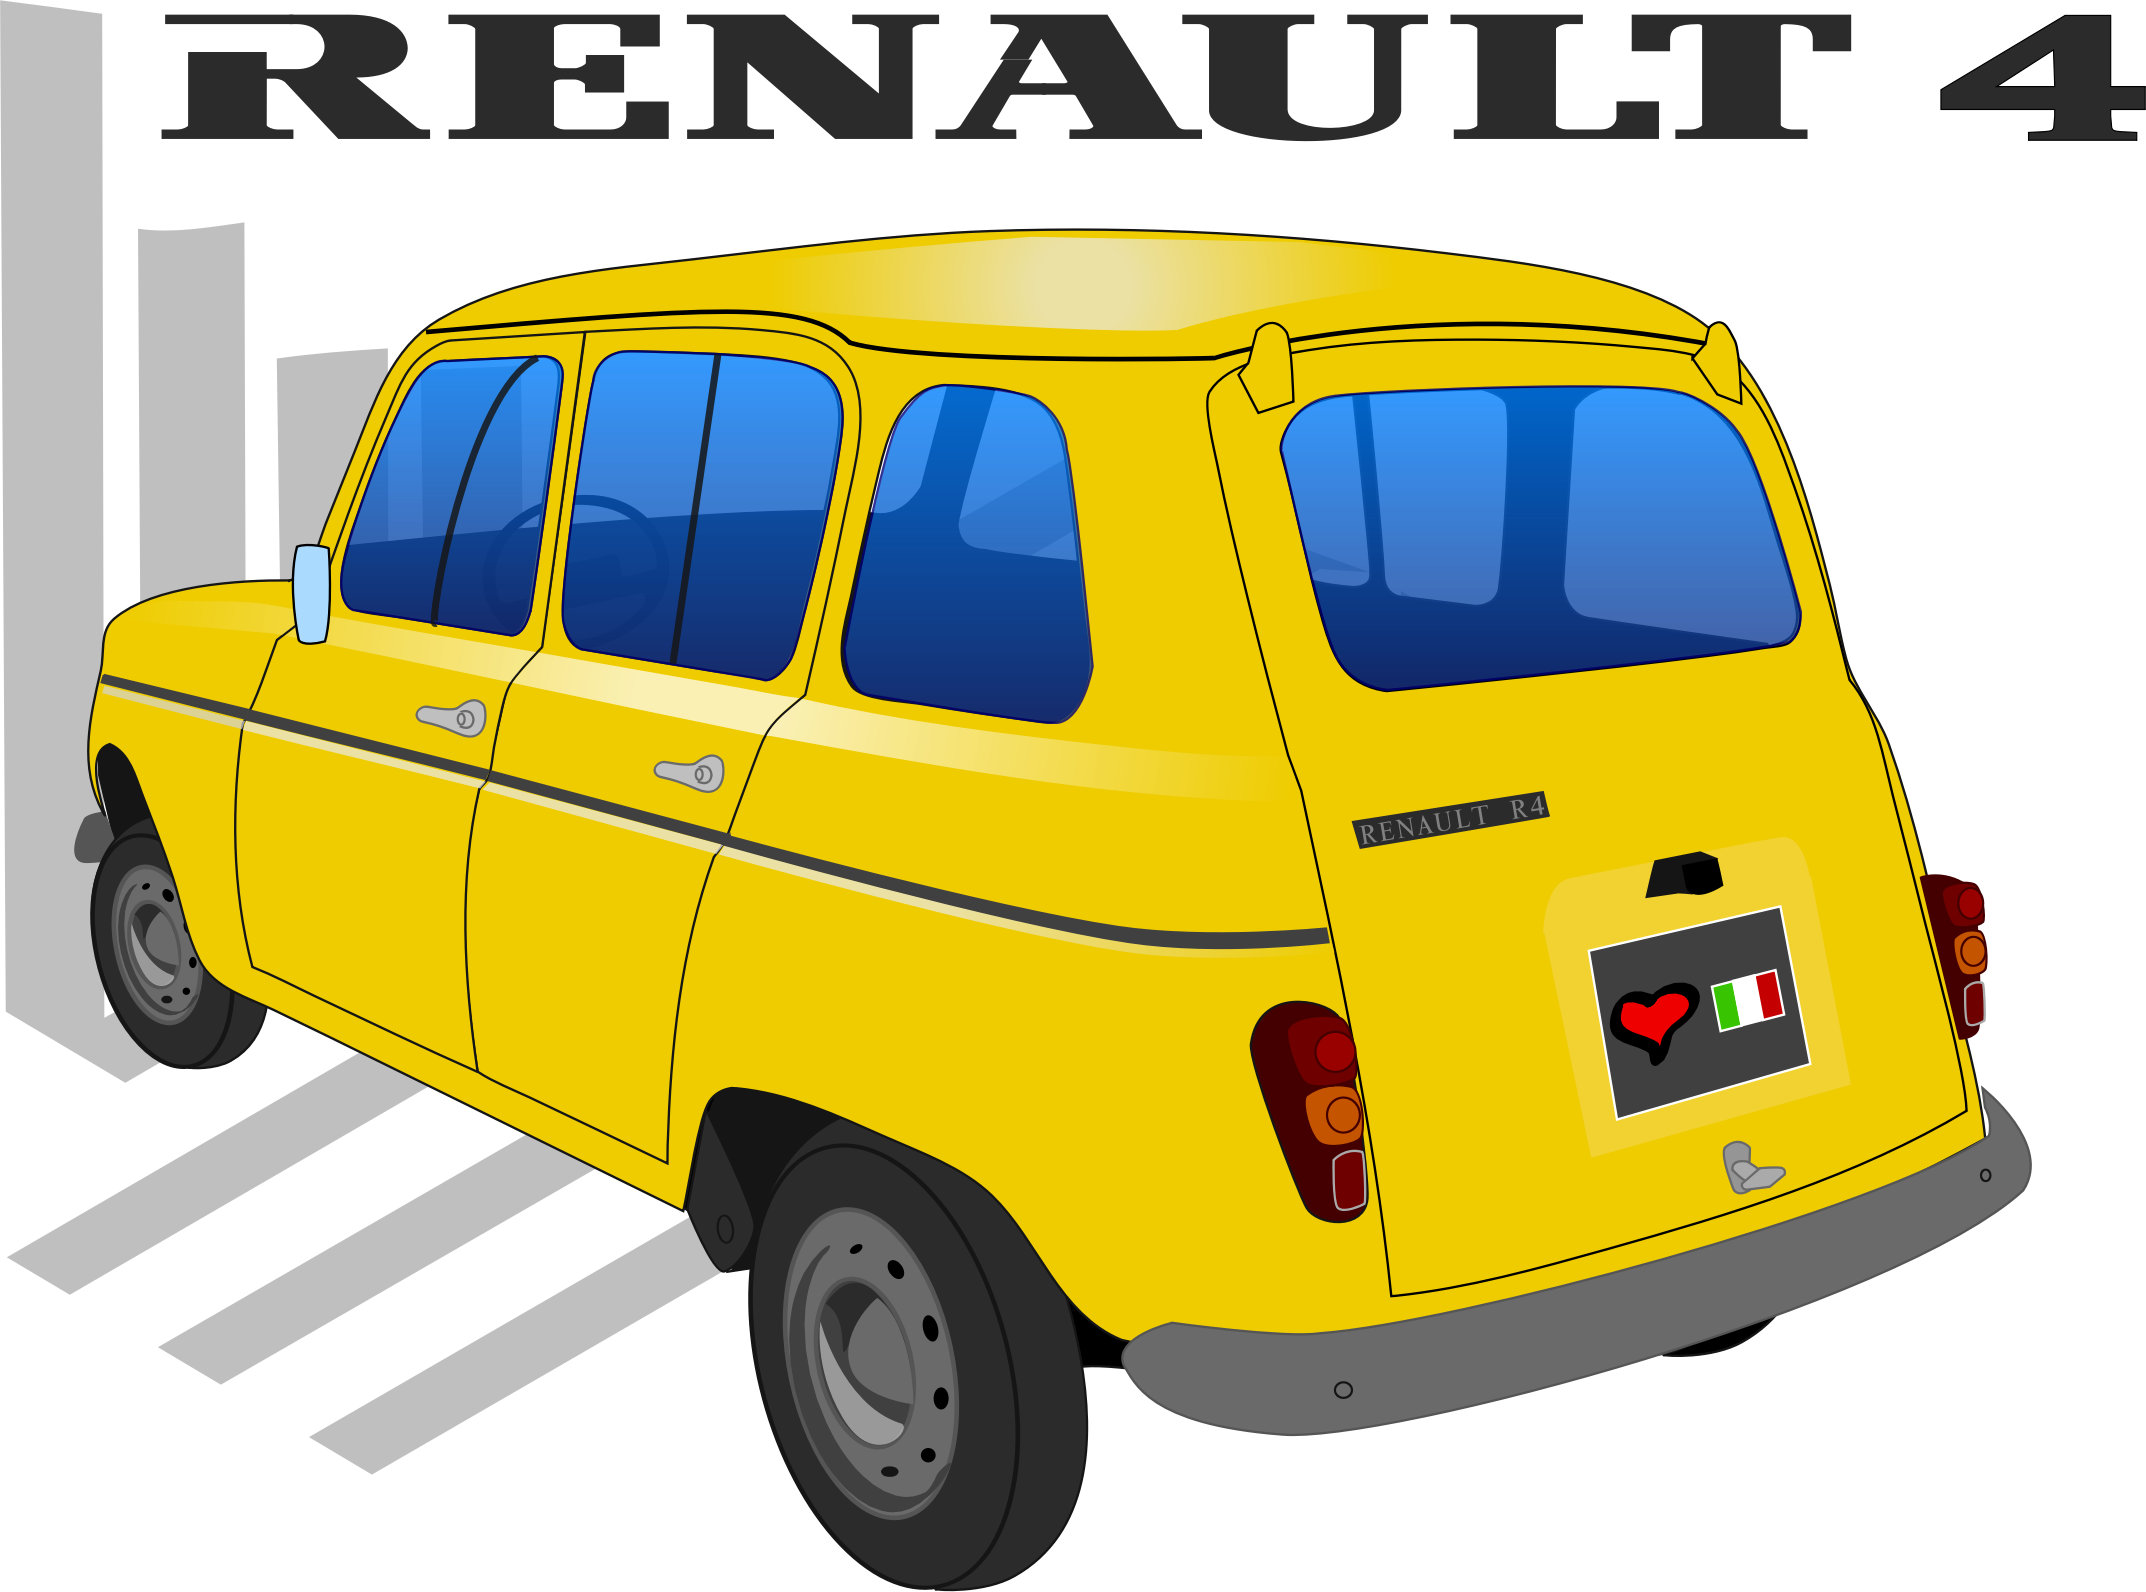 Renault 4TL by martin74